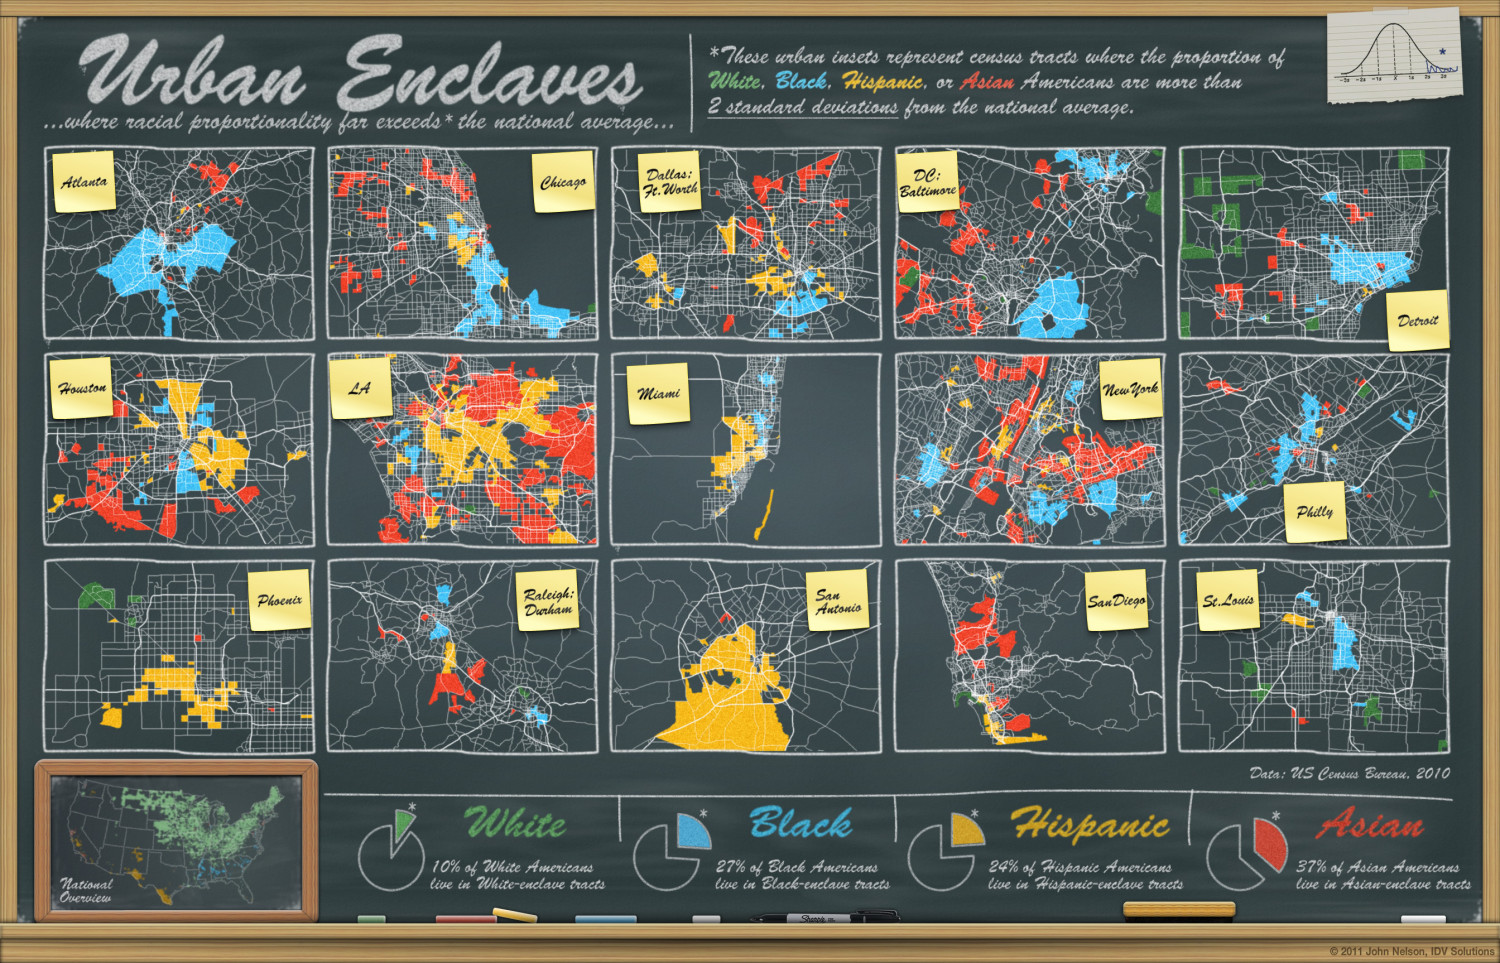 Urban Enclaves Infographic